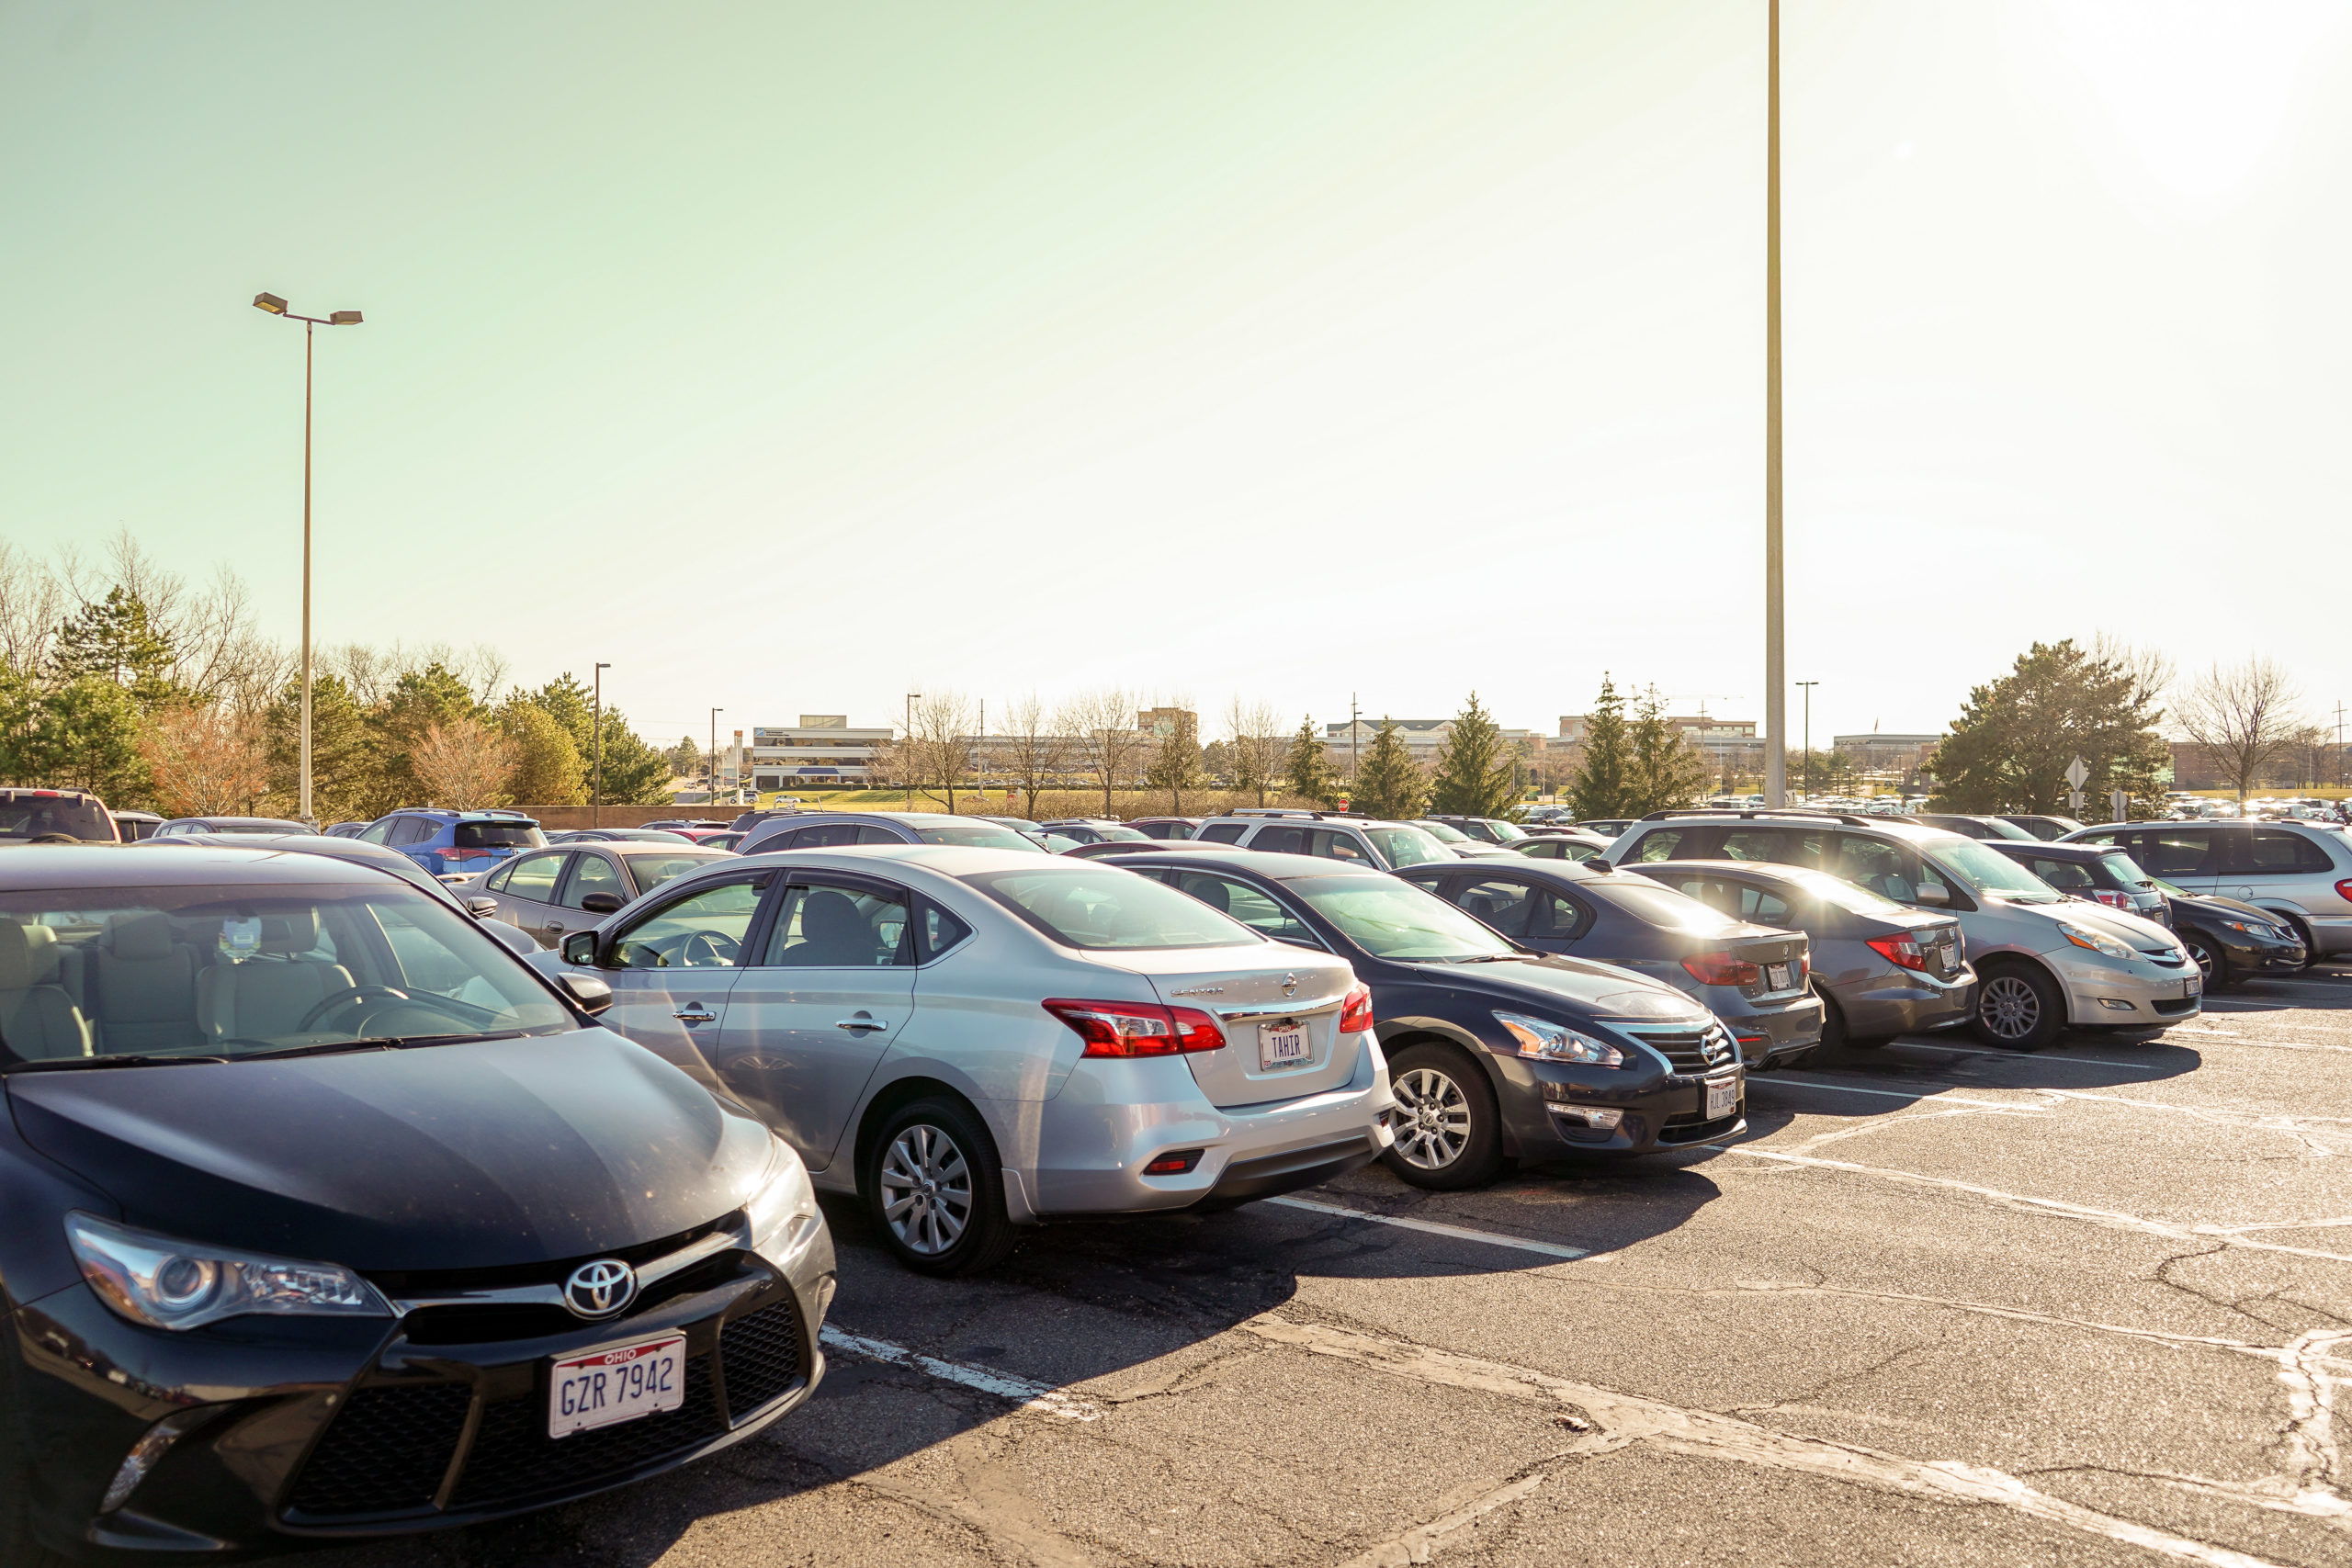 WSU Parking | Photo by Soham Parikh | The Wright State Guardian